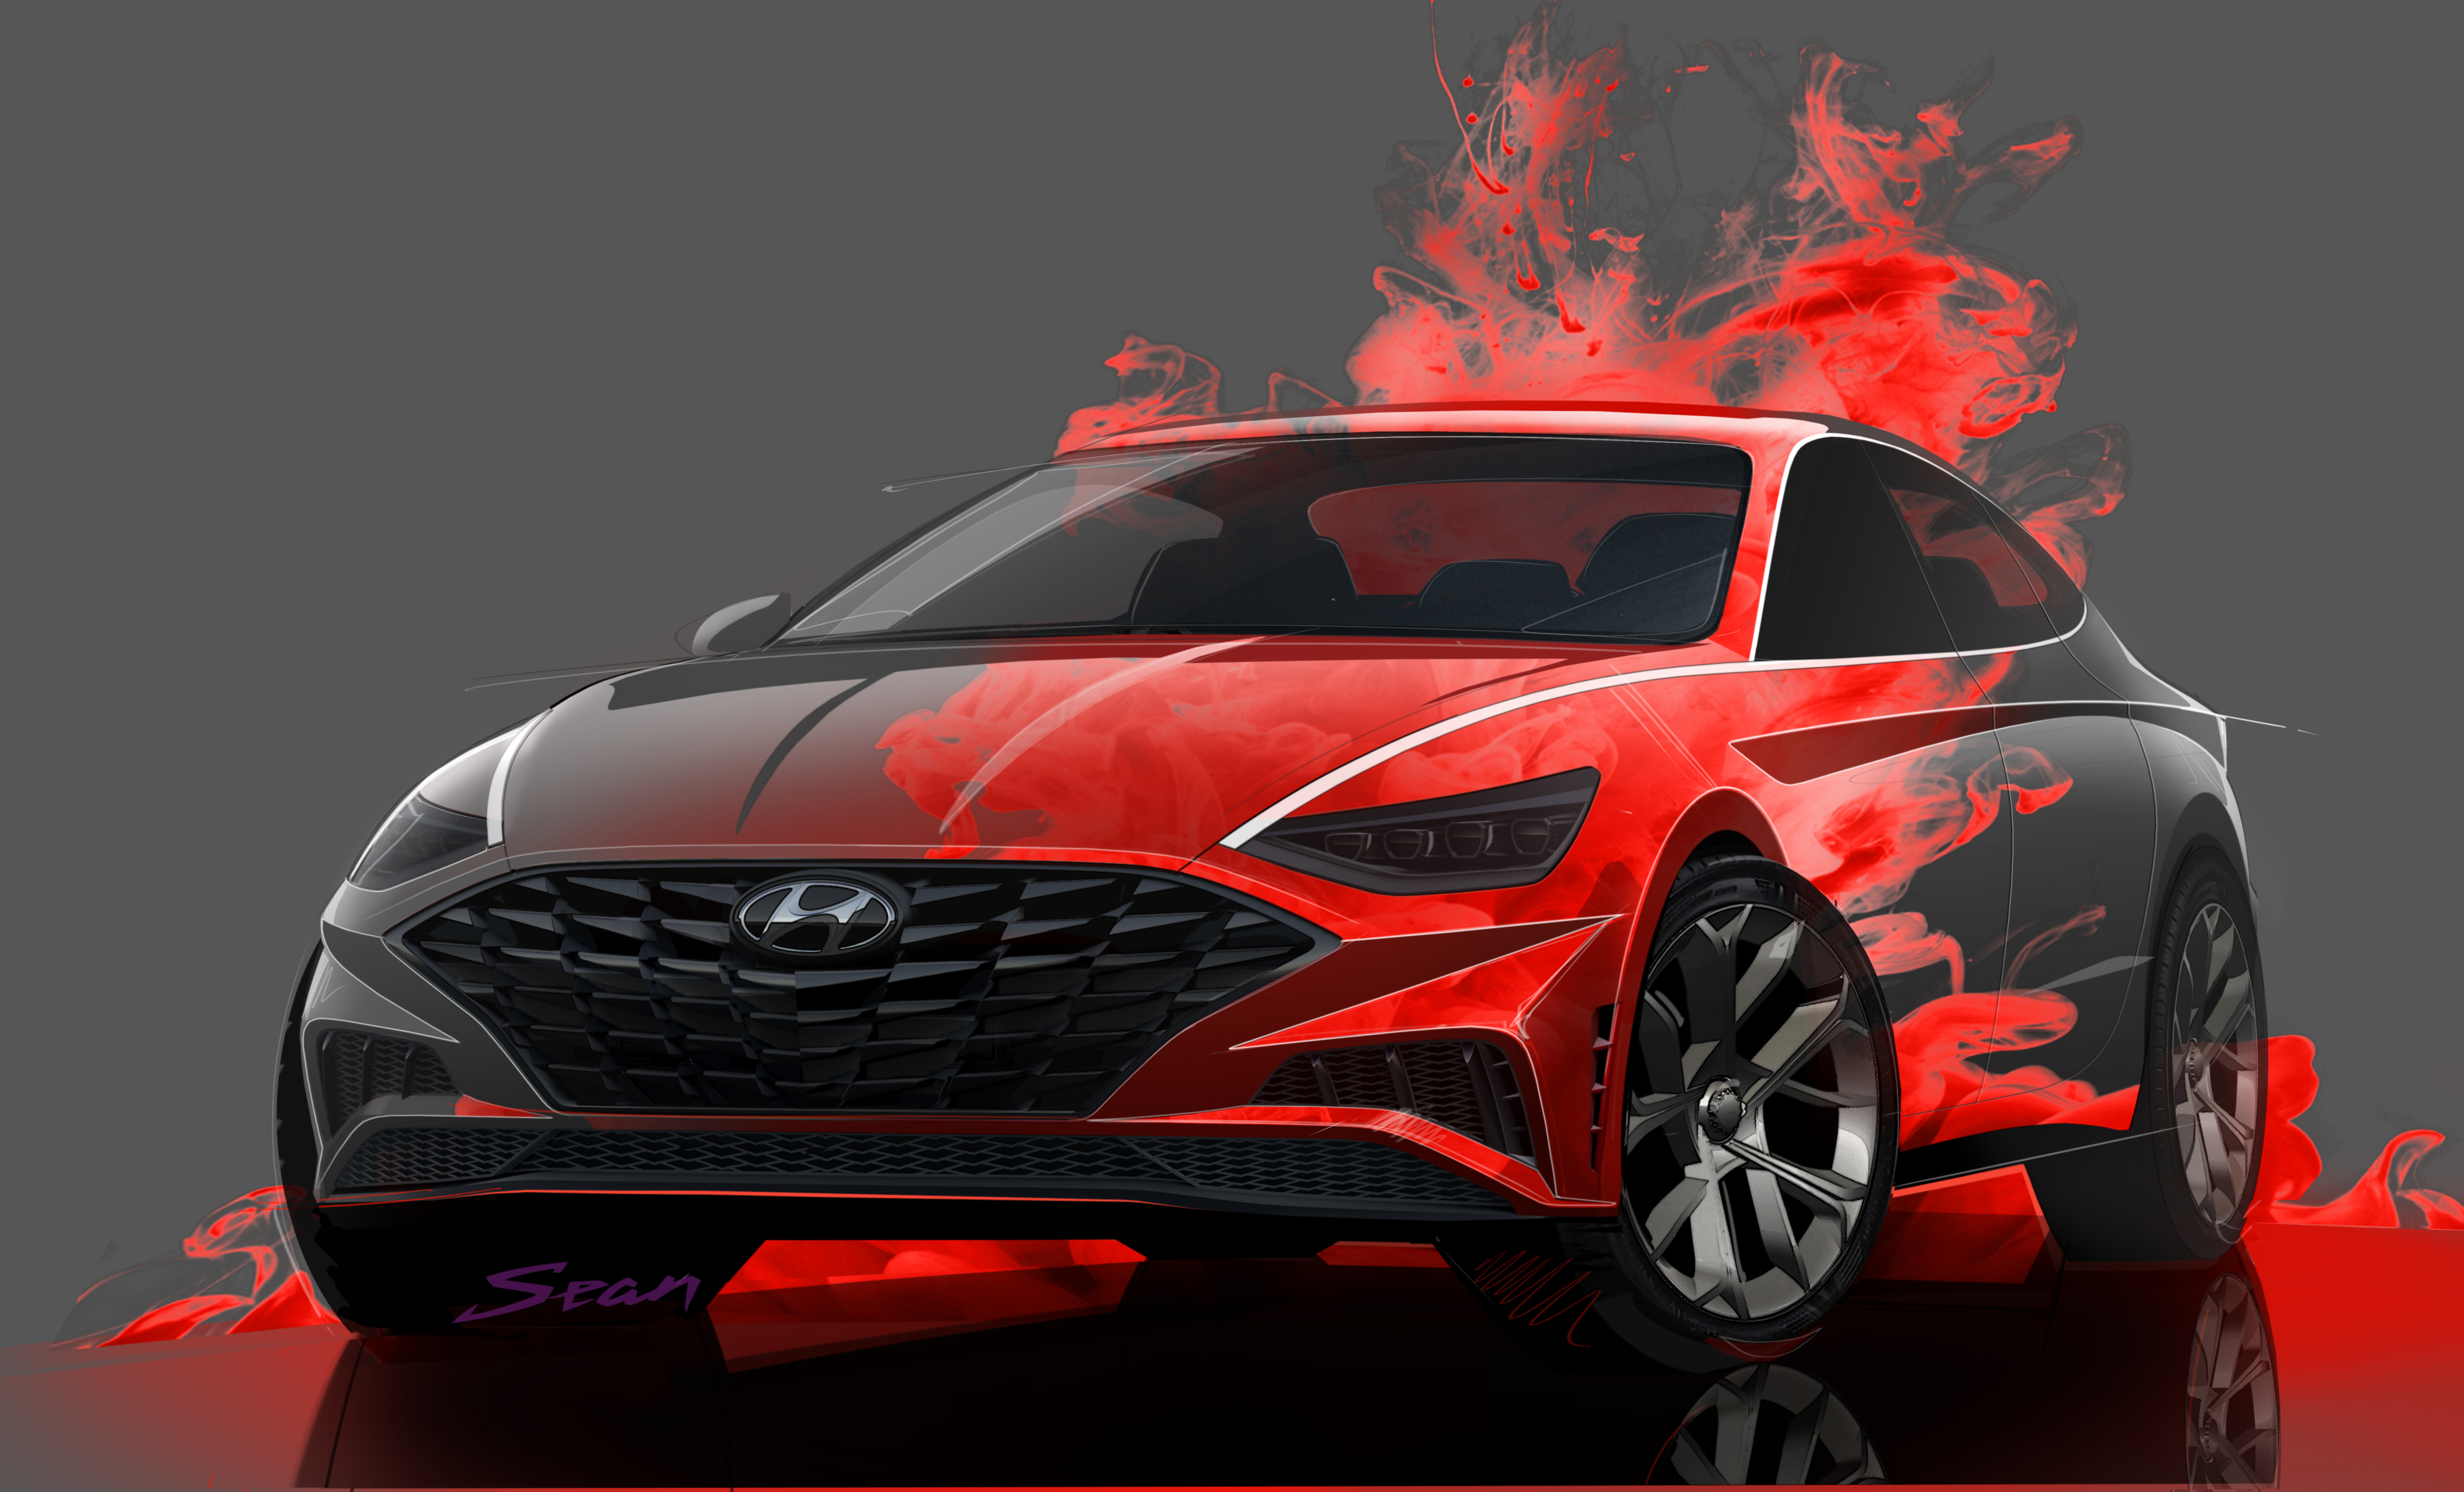 2020 Hyundai Sonata at Healey Brothers